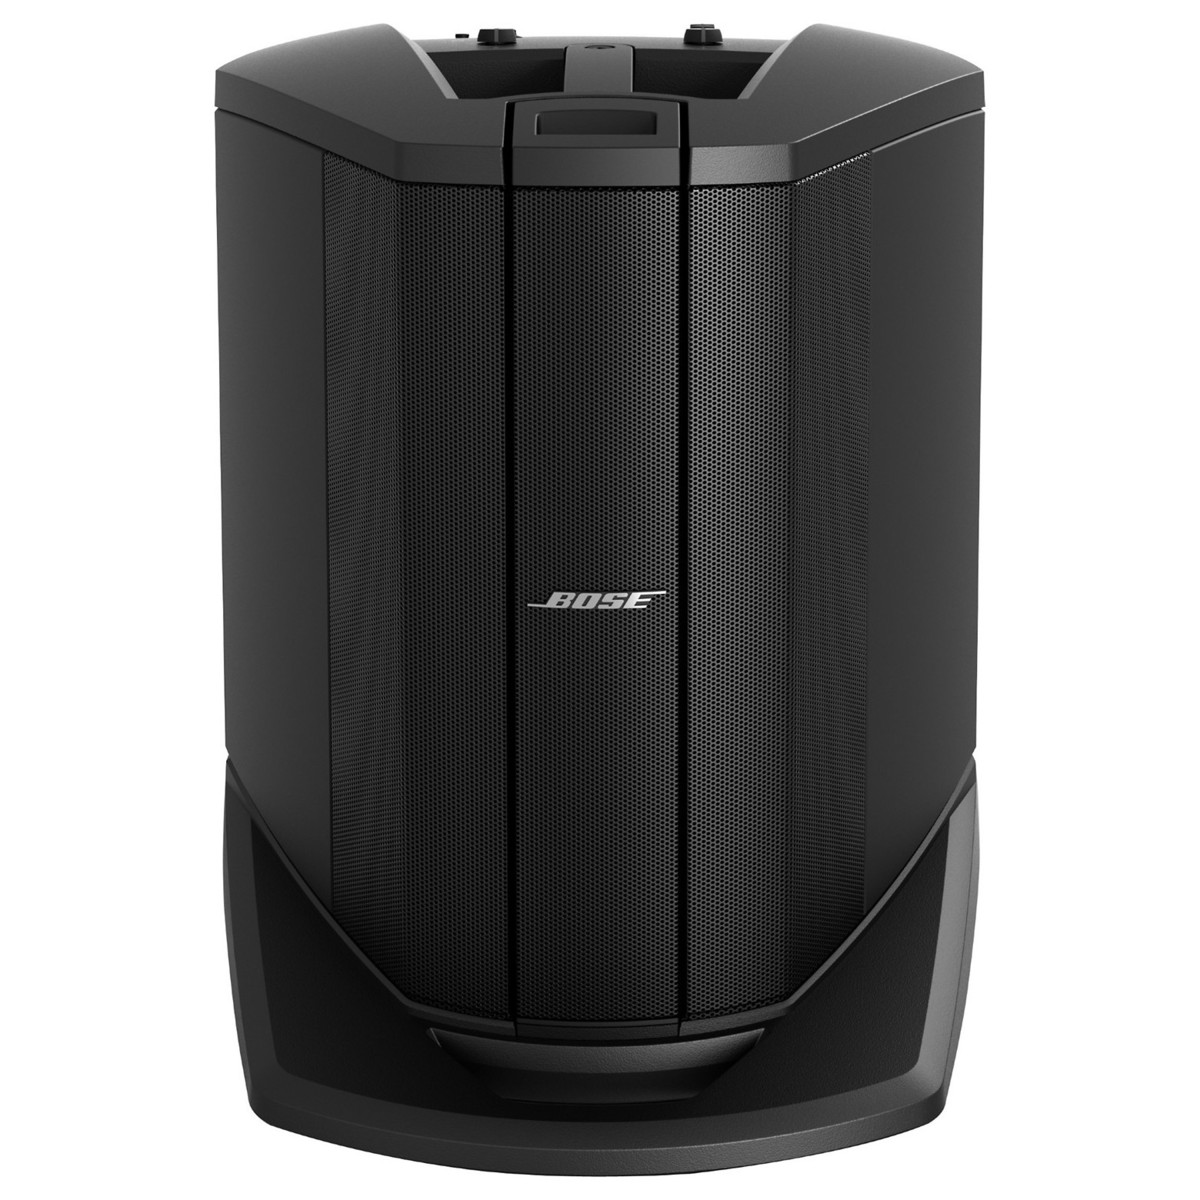 bose l1 kompaktes pa system b ware bei gear4music. Black Bedroom Furniture Sets. Home Design Ideas